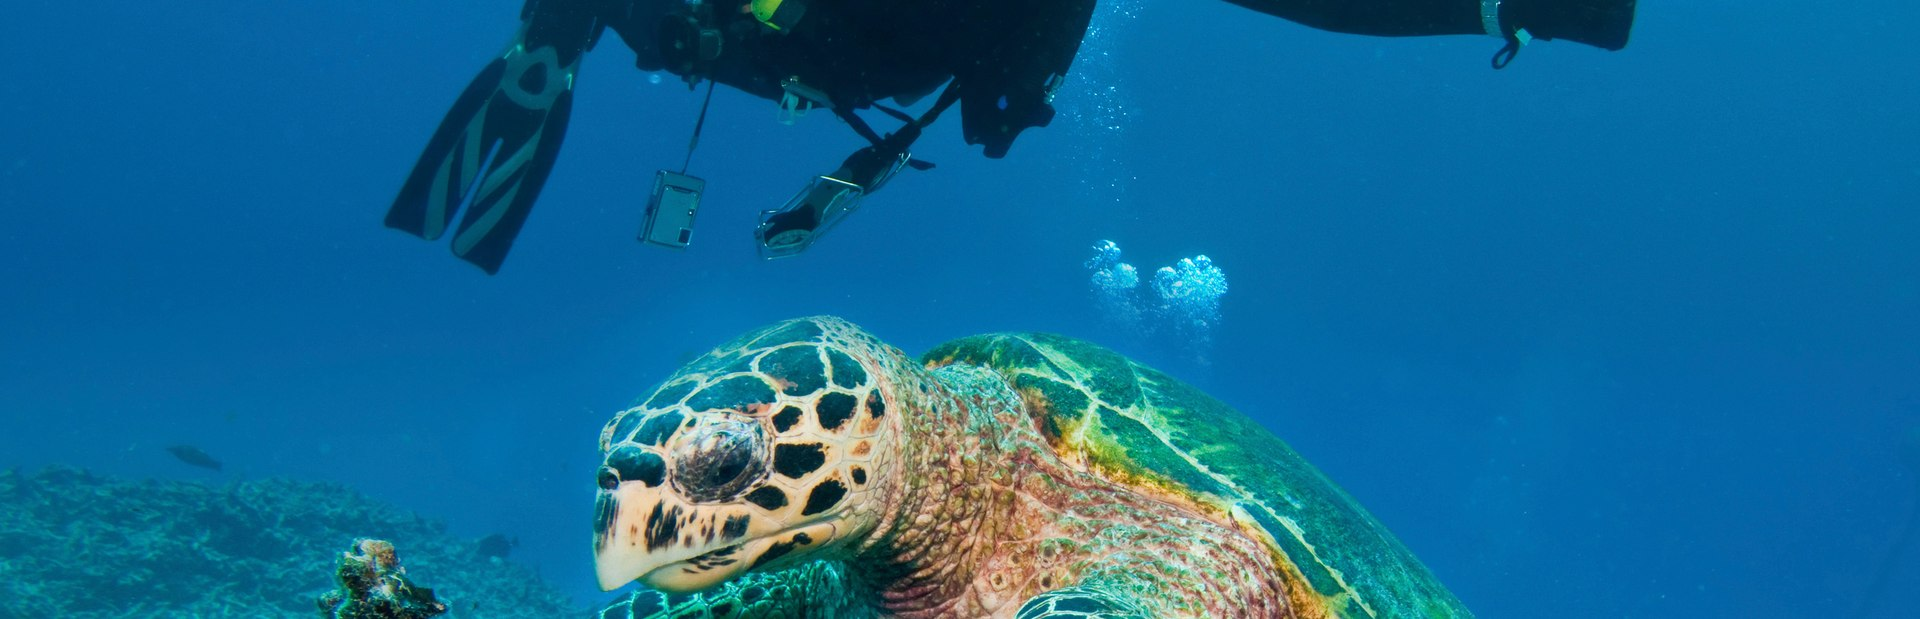 Great Barrier Reef inspiration and tips